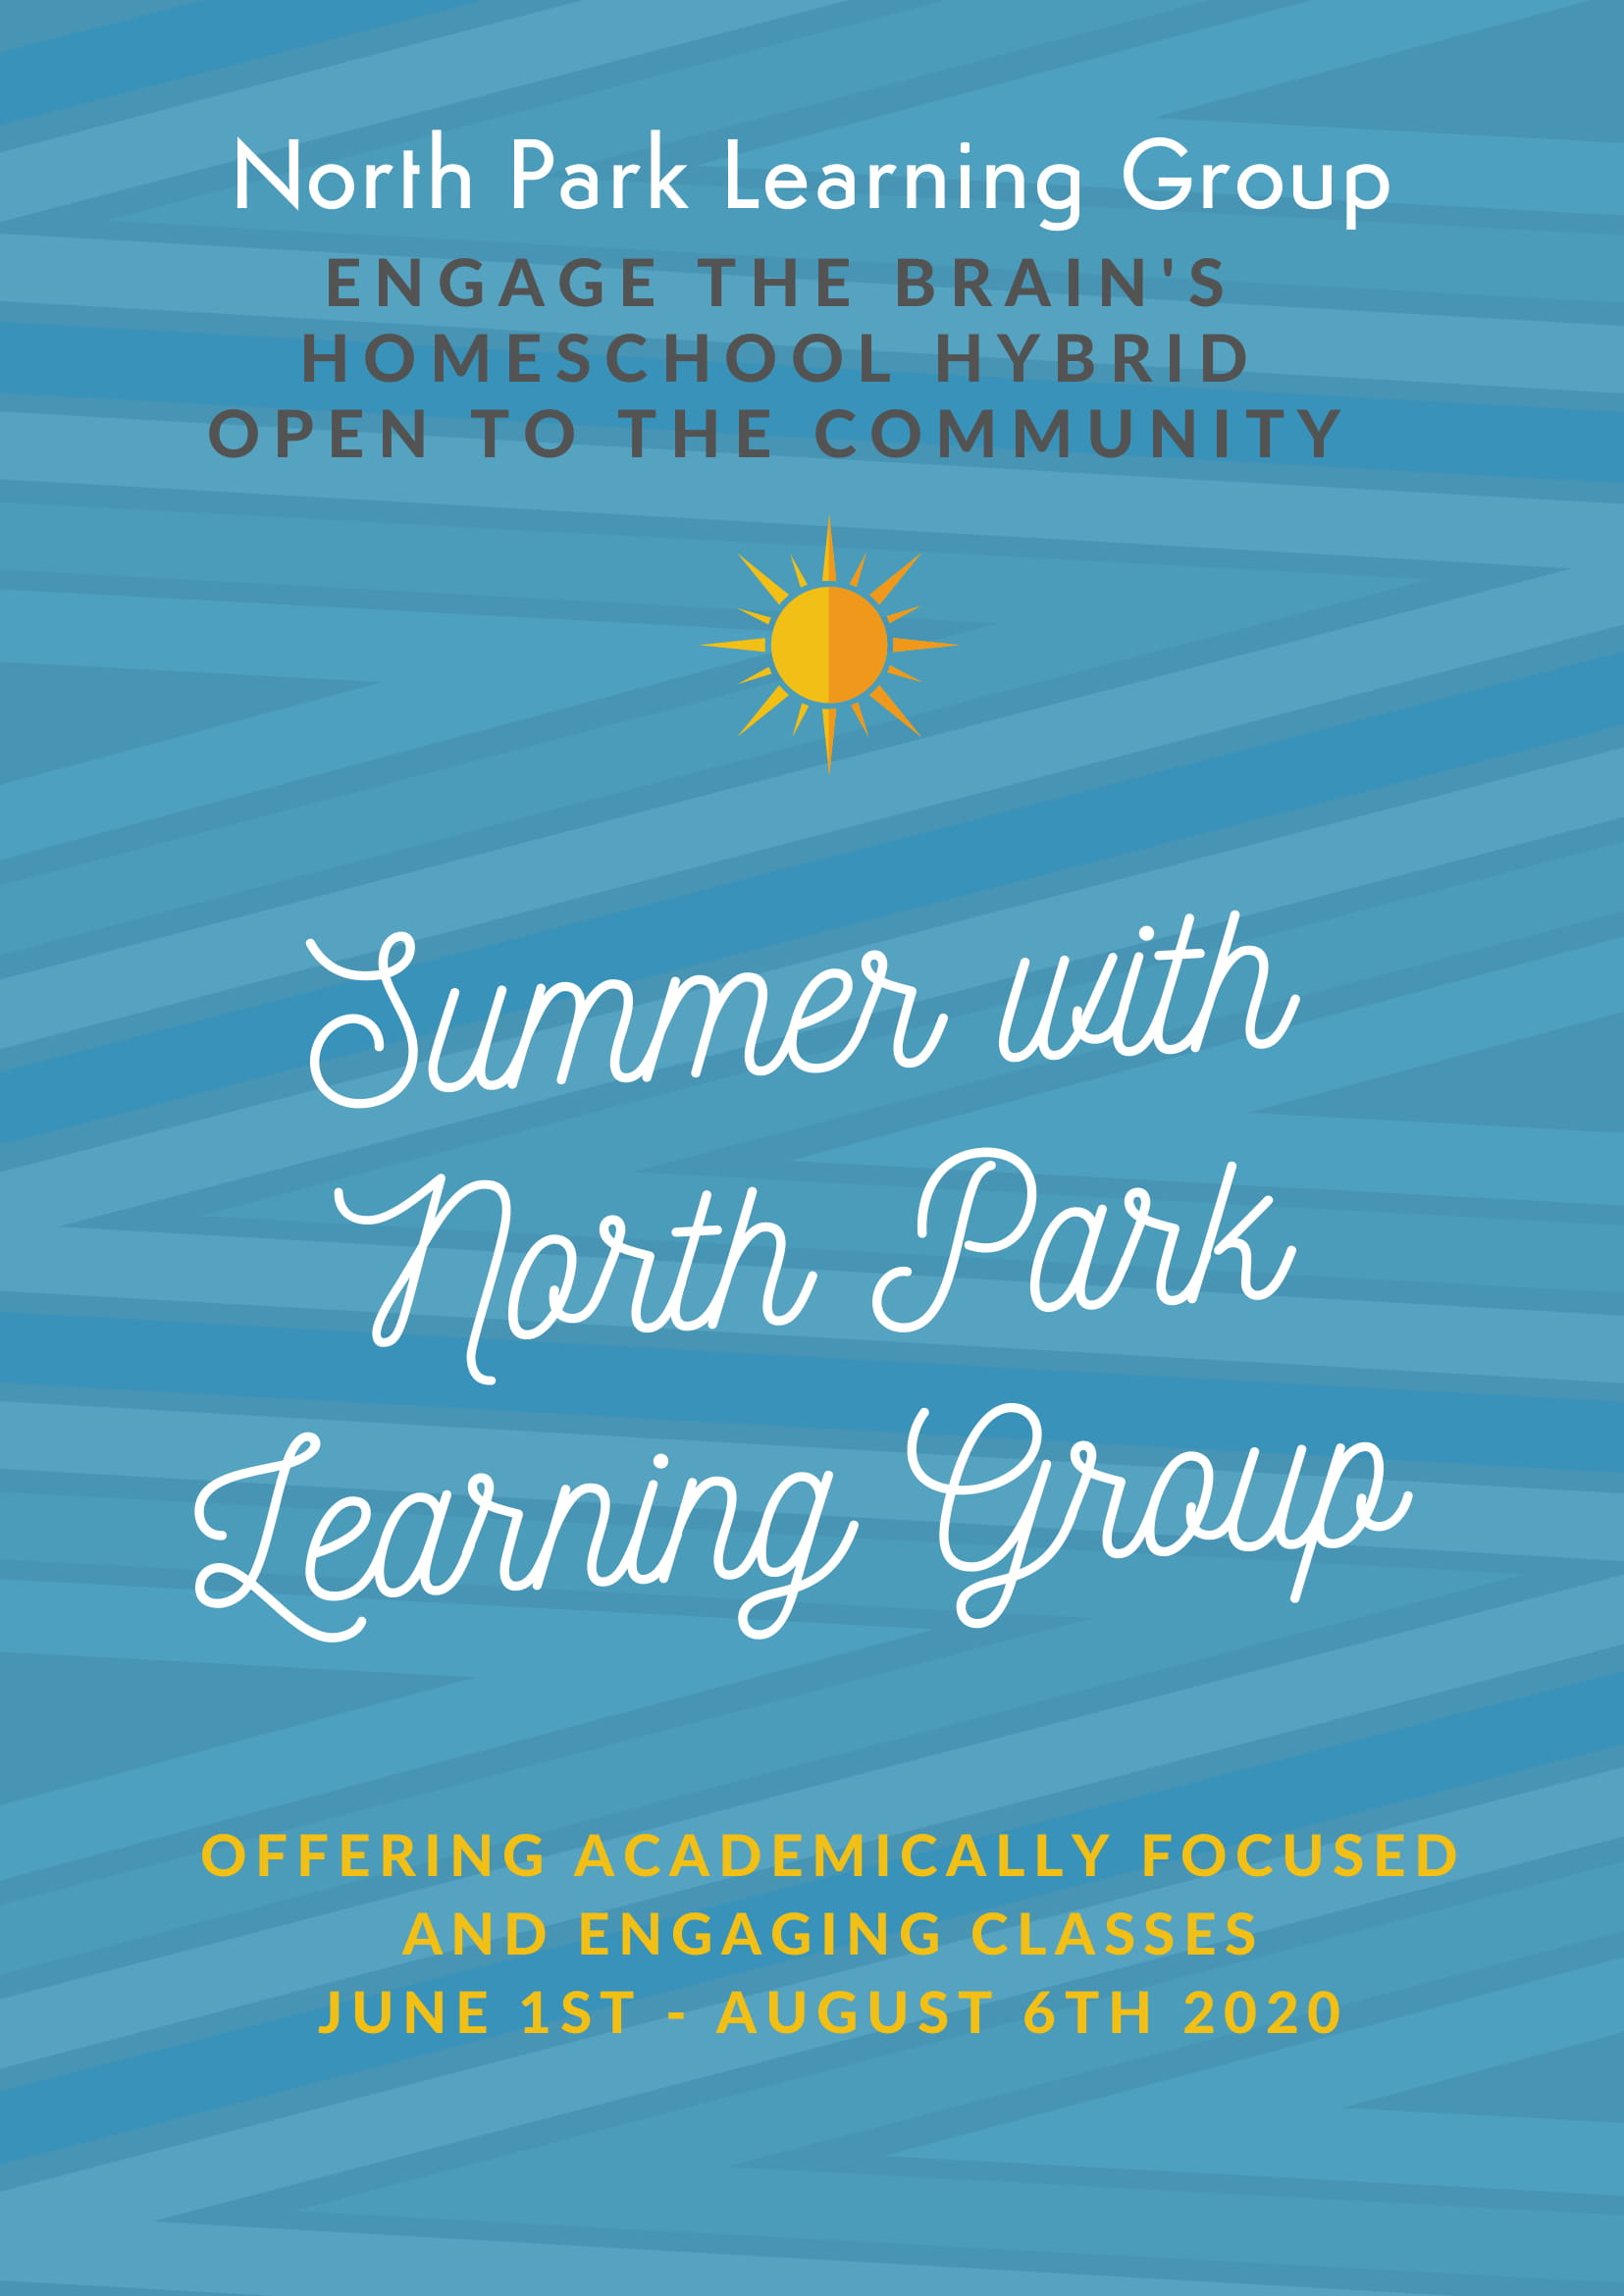 North Park Learning Group Summer Classes-6-1